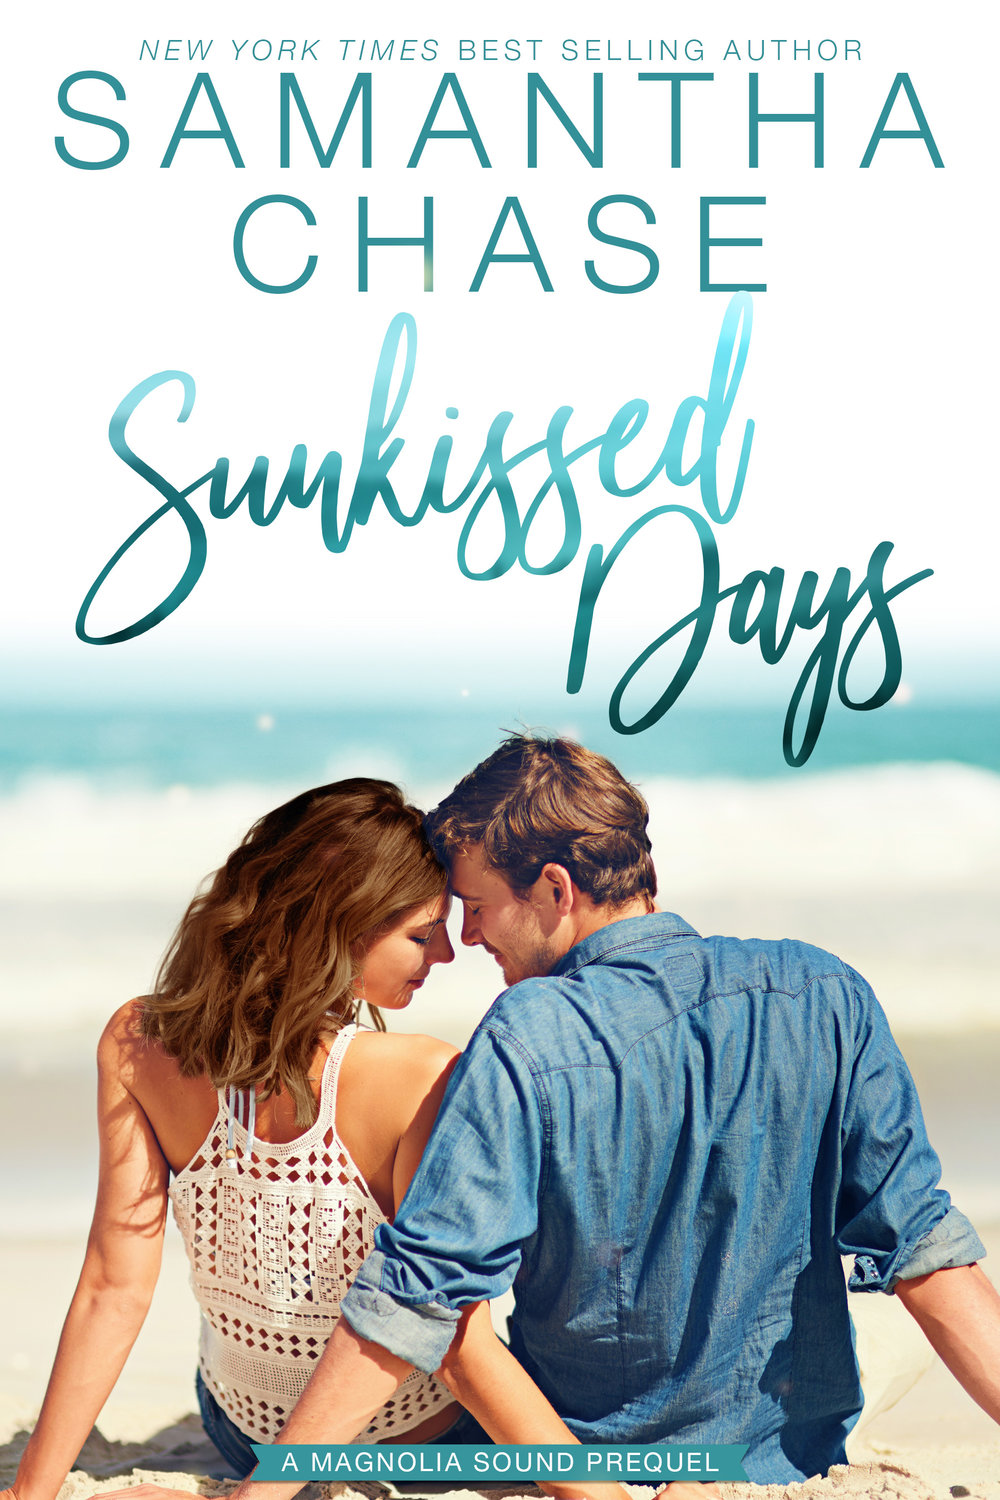 Samantha Chase Magnolia Sound Sunkissed Days (Apple Books).jpg